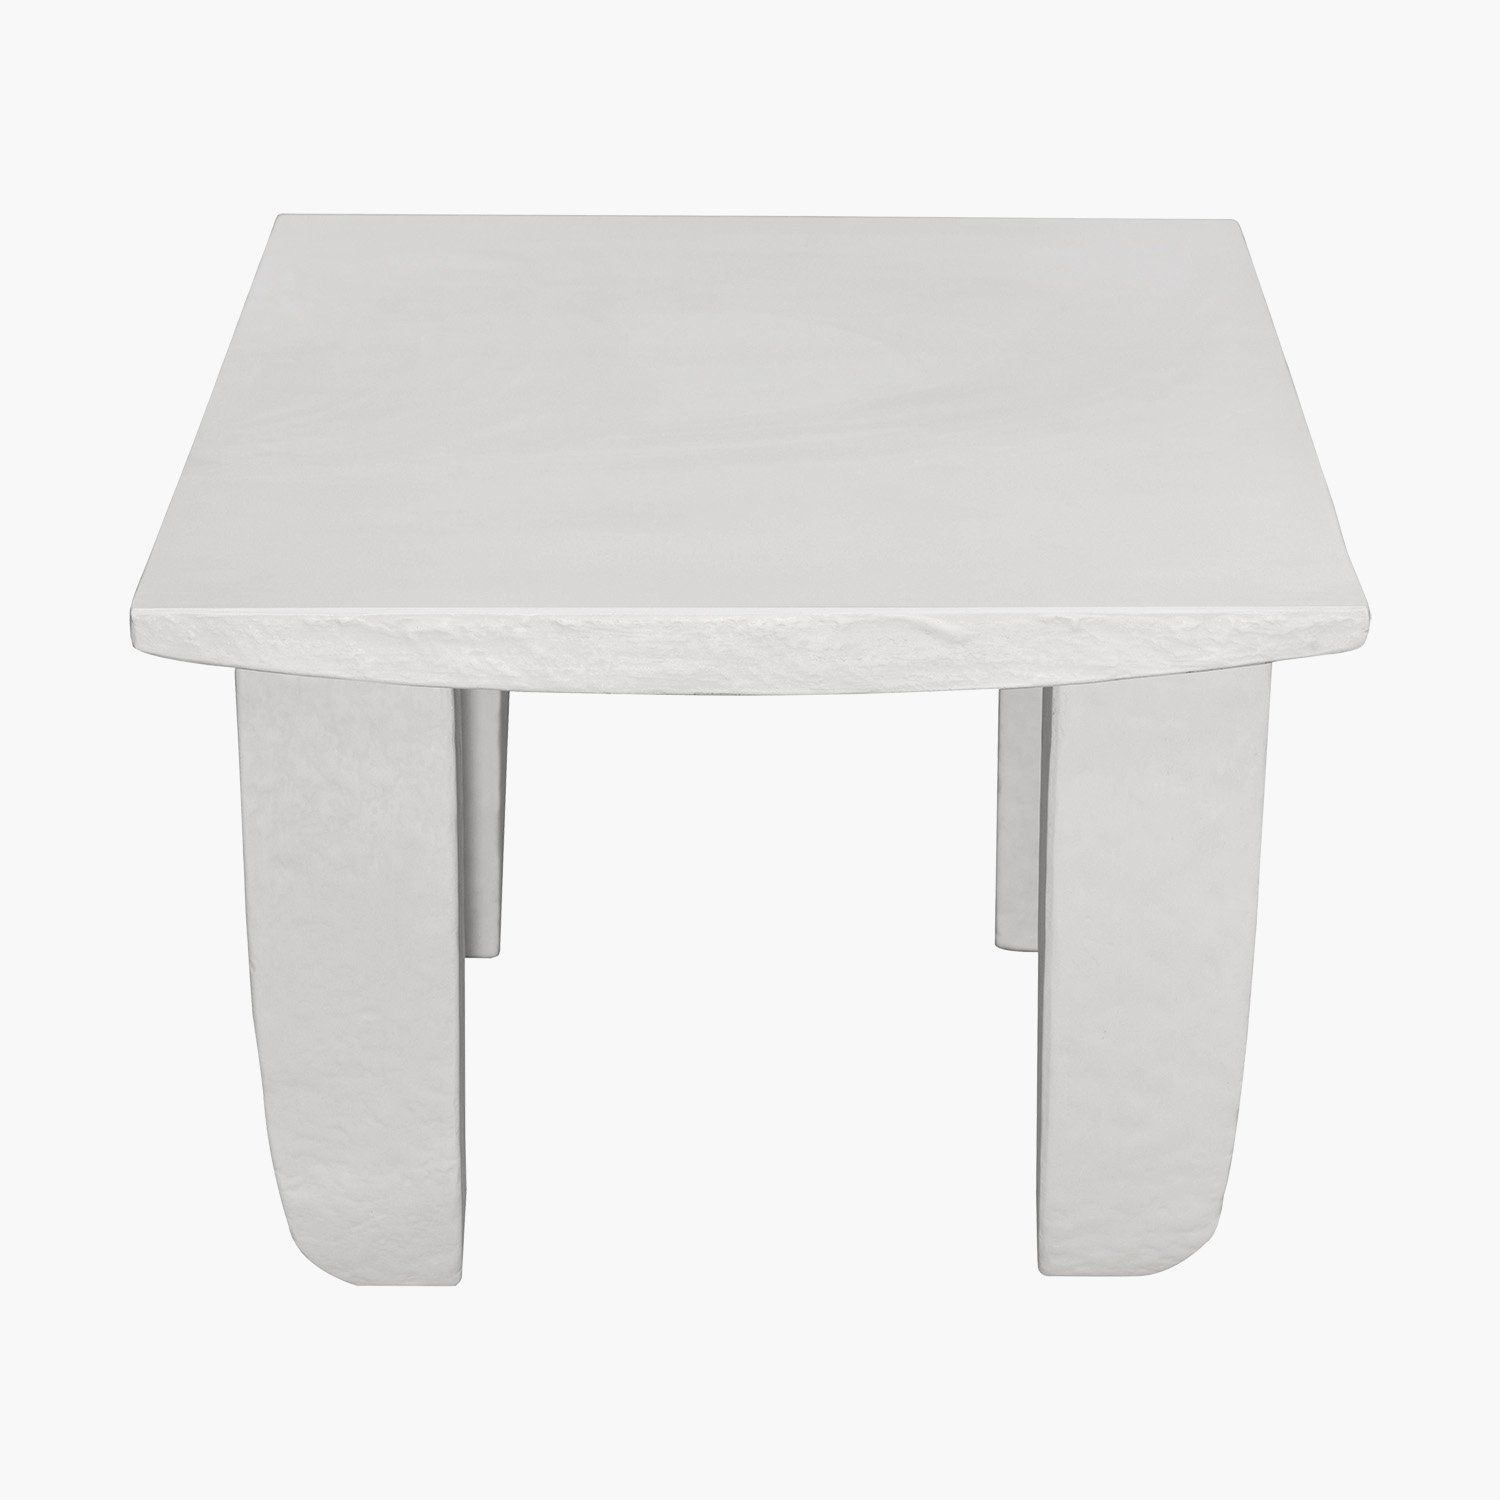 Photo of Bercy Cocktail Table